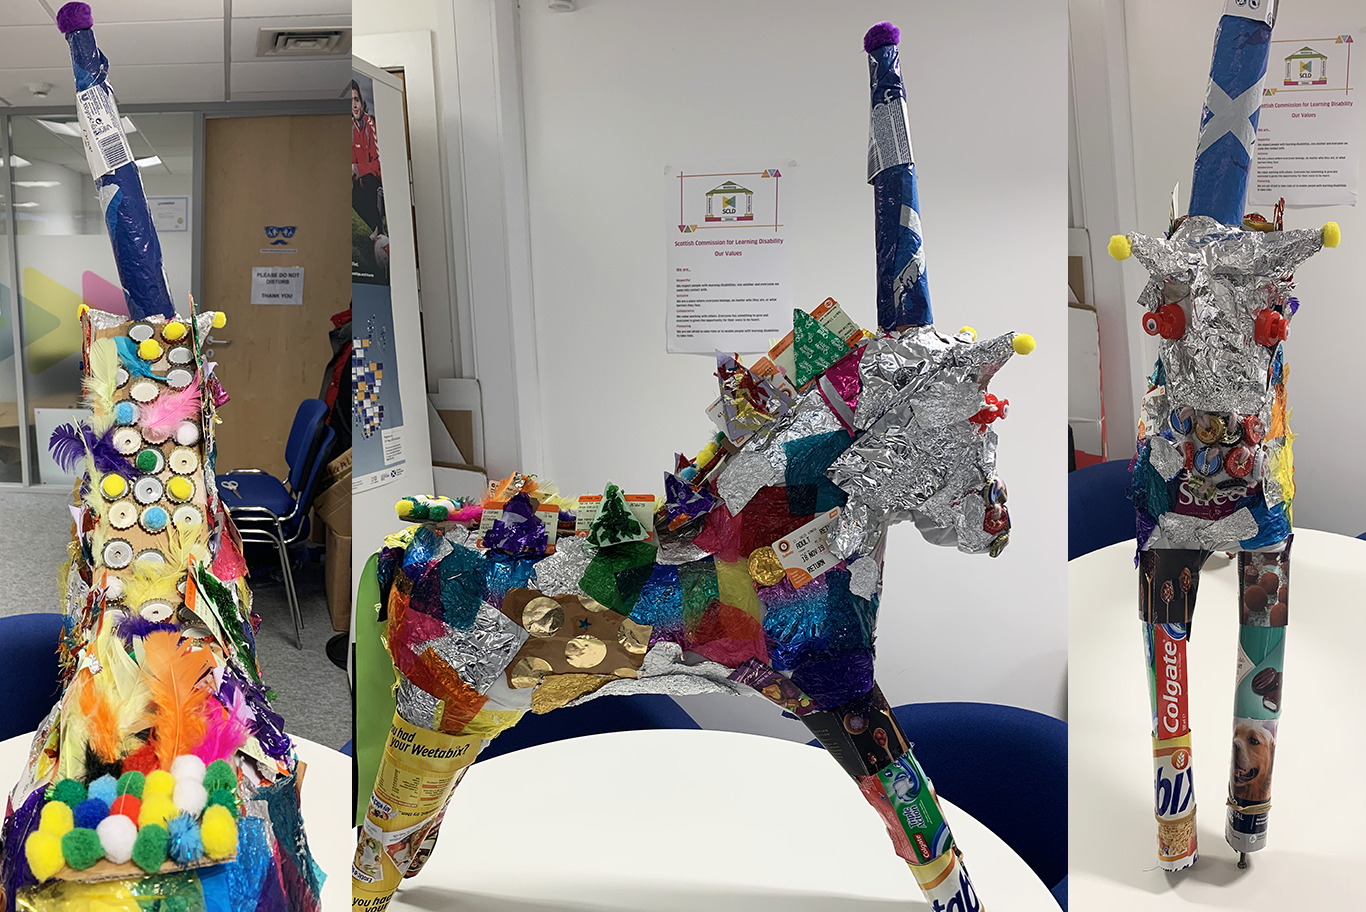 A series of pictures showing Uno the Unicorn, the Scottish Learning Disability Week mascot, made entirely of recycled materials.